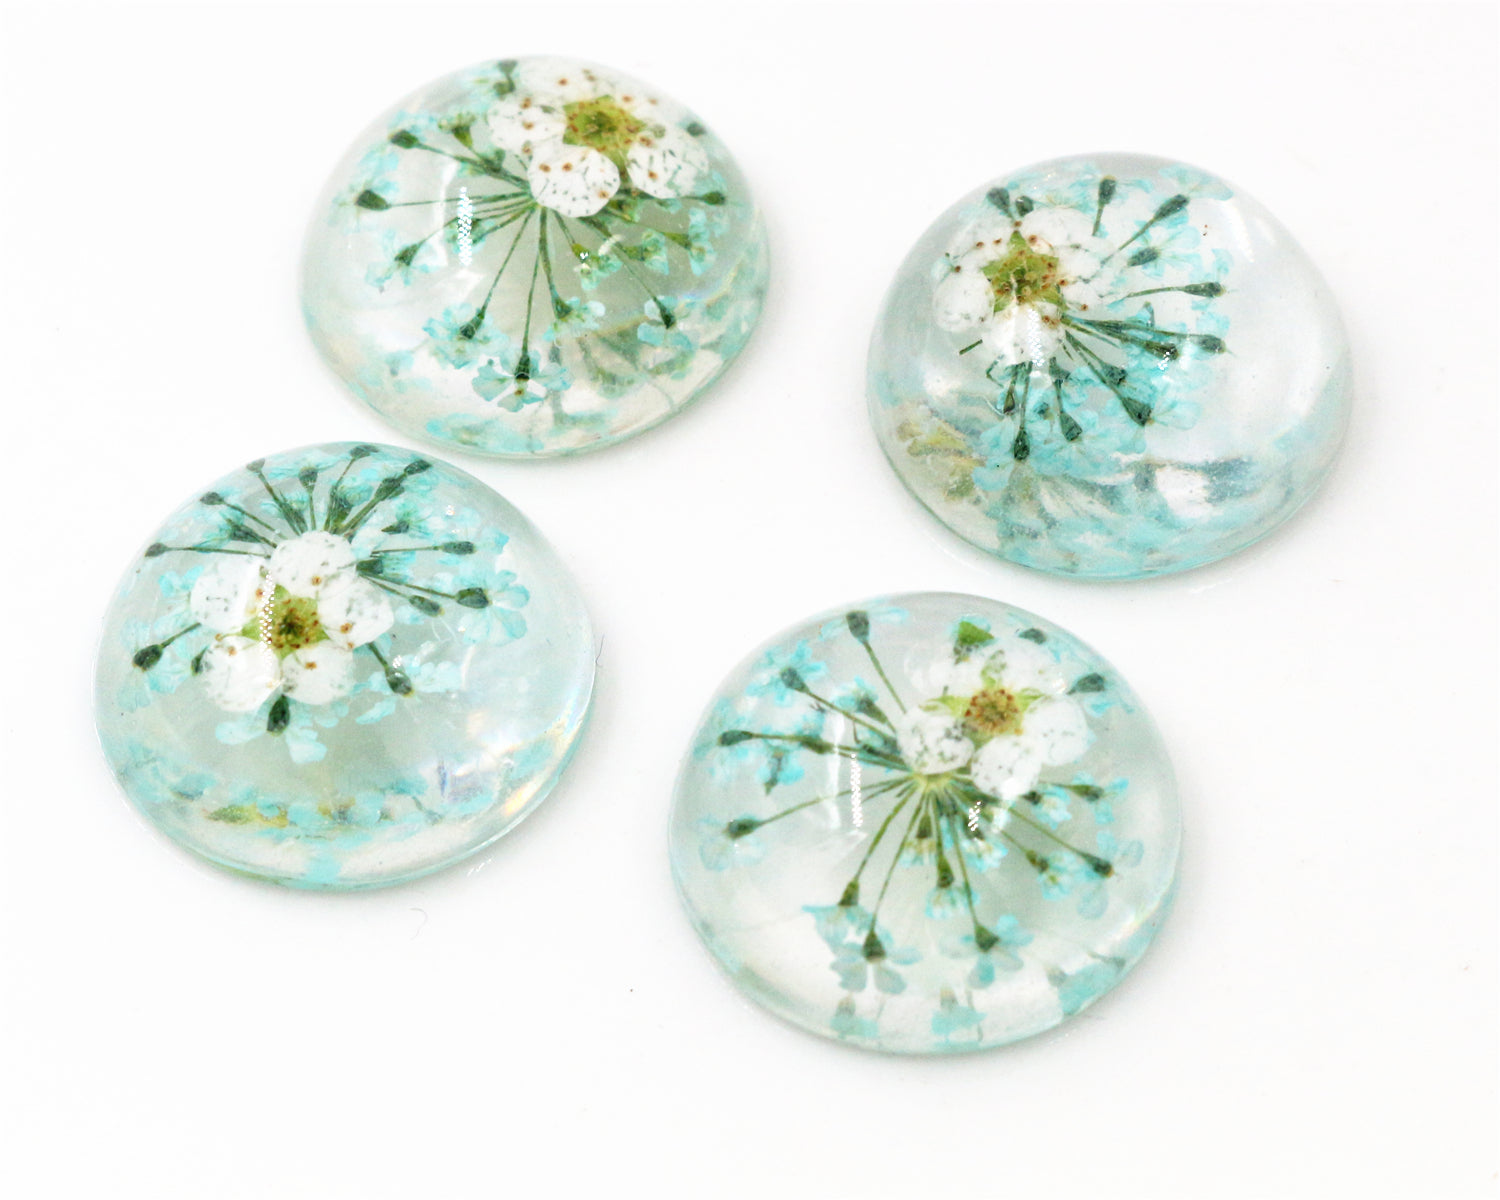 20mm Round Resin Cabochons Sky Blue Natural Dried White Chrysanthemum Flowers Cameo Fit Finding Setting